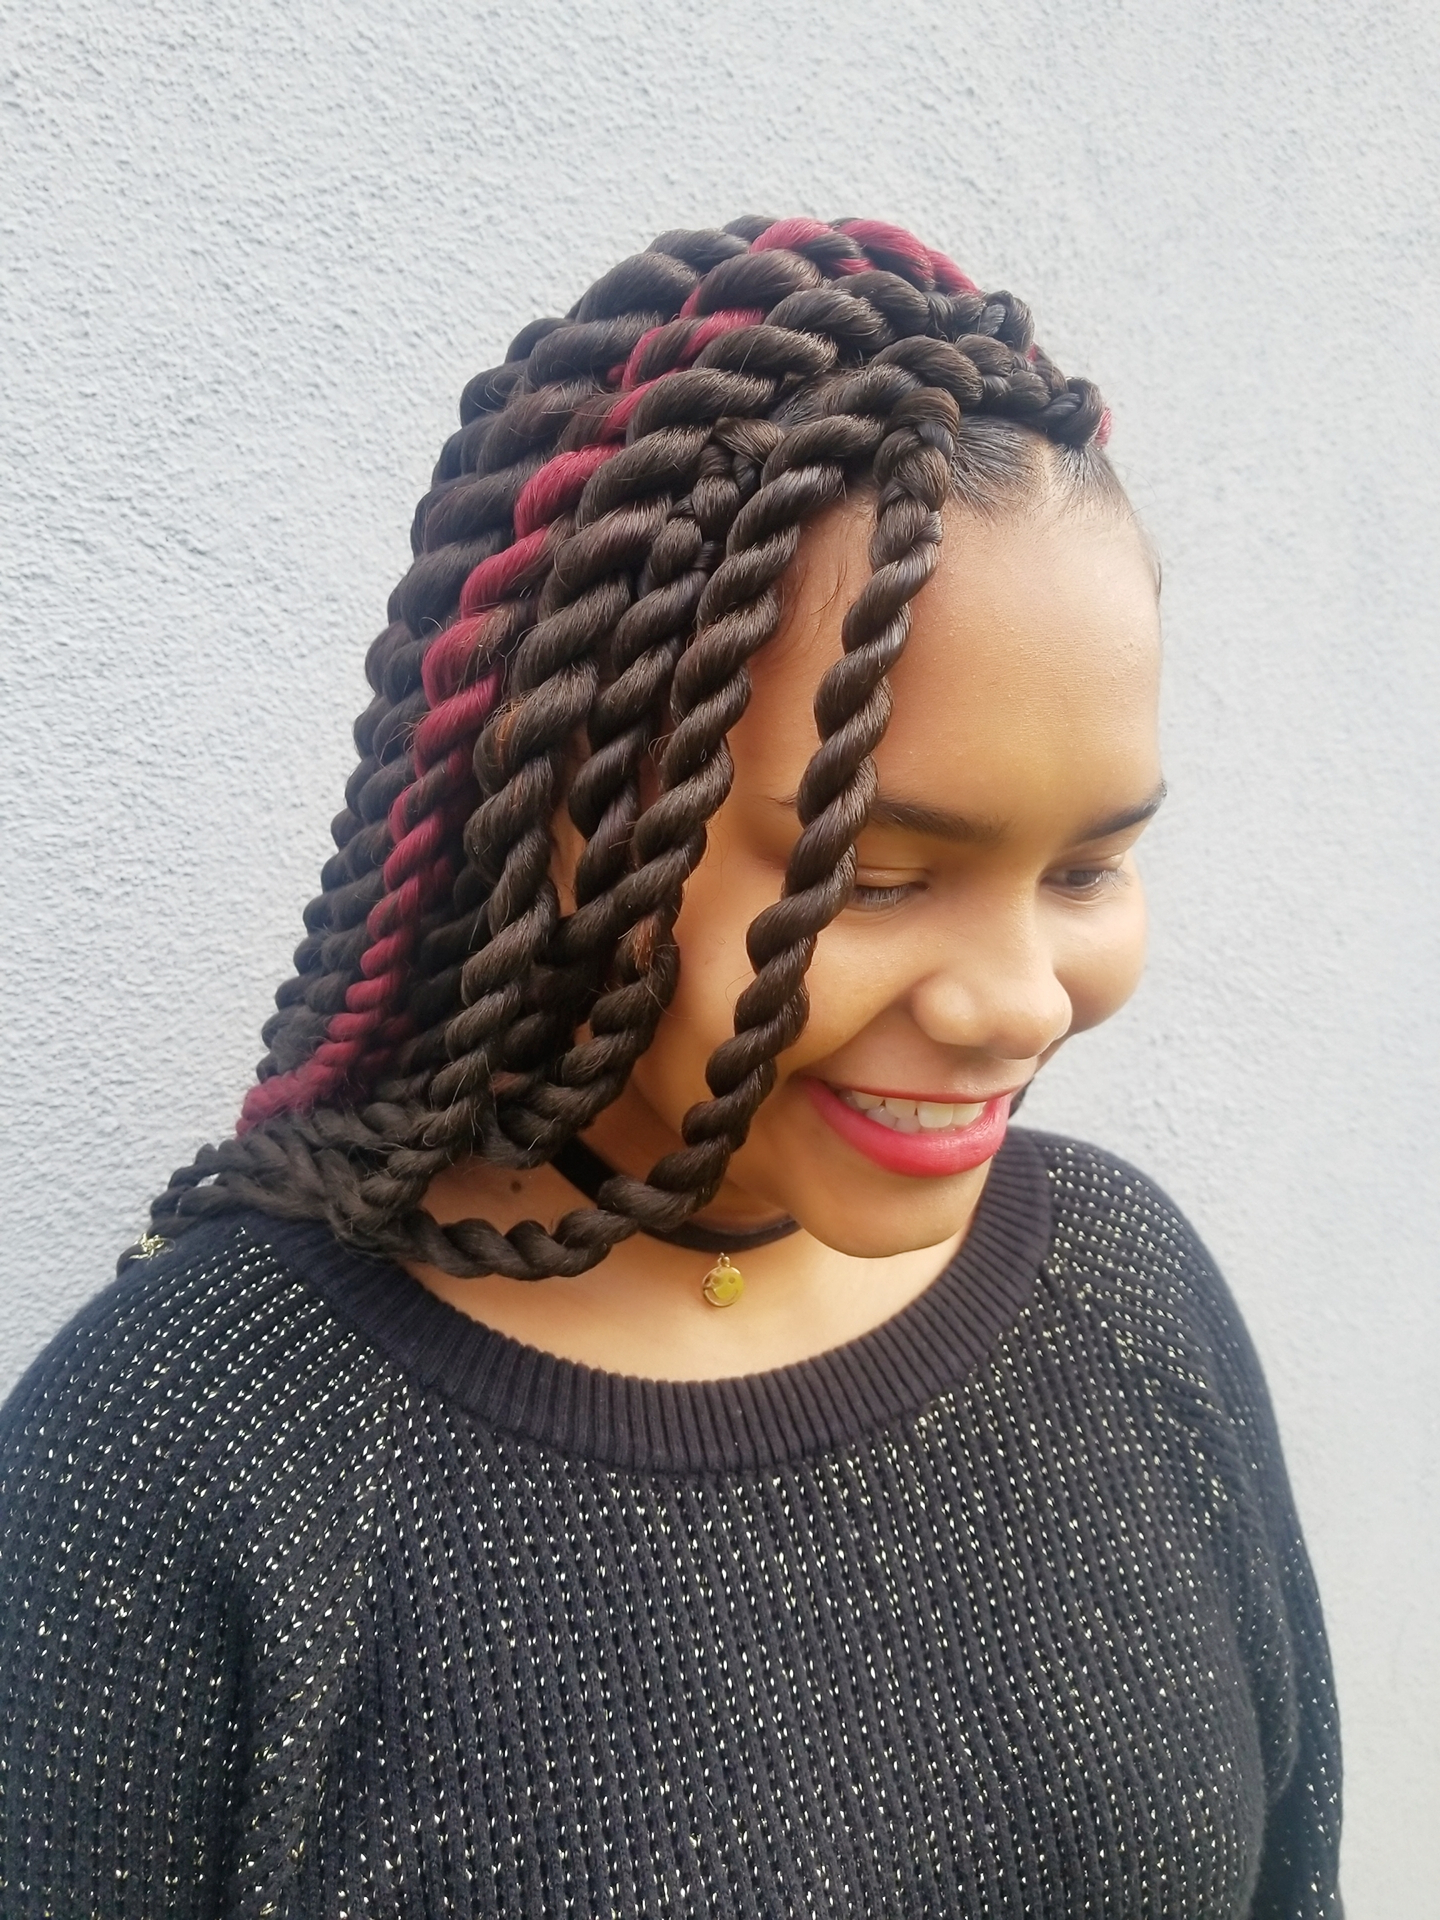 Here's Everything You Need To Know About Getting Braids With Most Popular African Red Twists Micro Braid Hairstyles (Gallery 13 of 20)